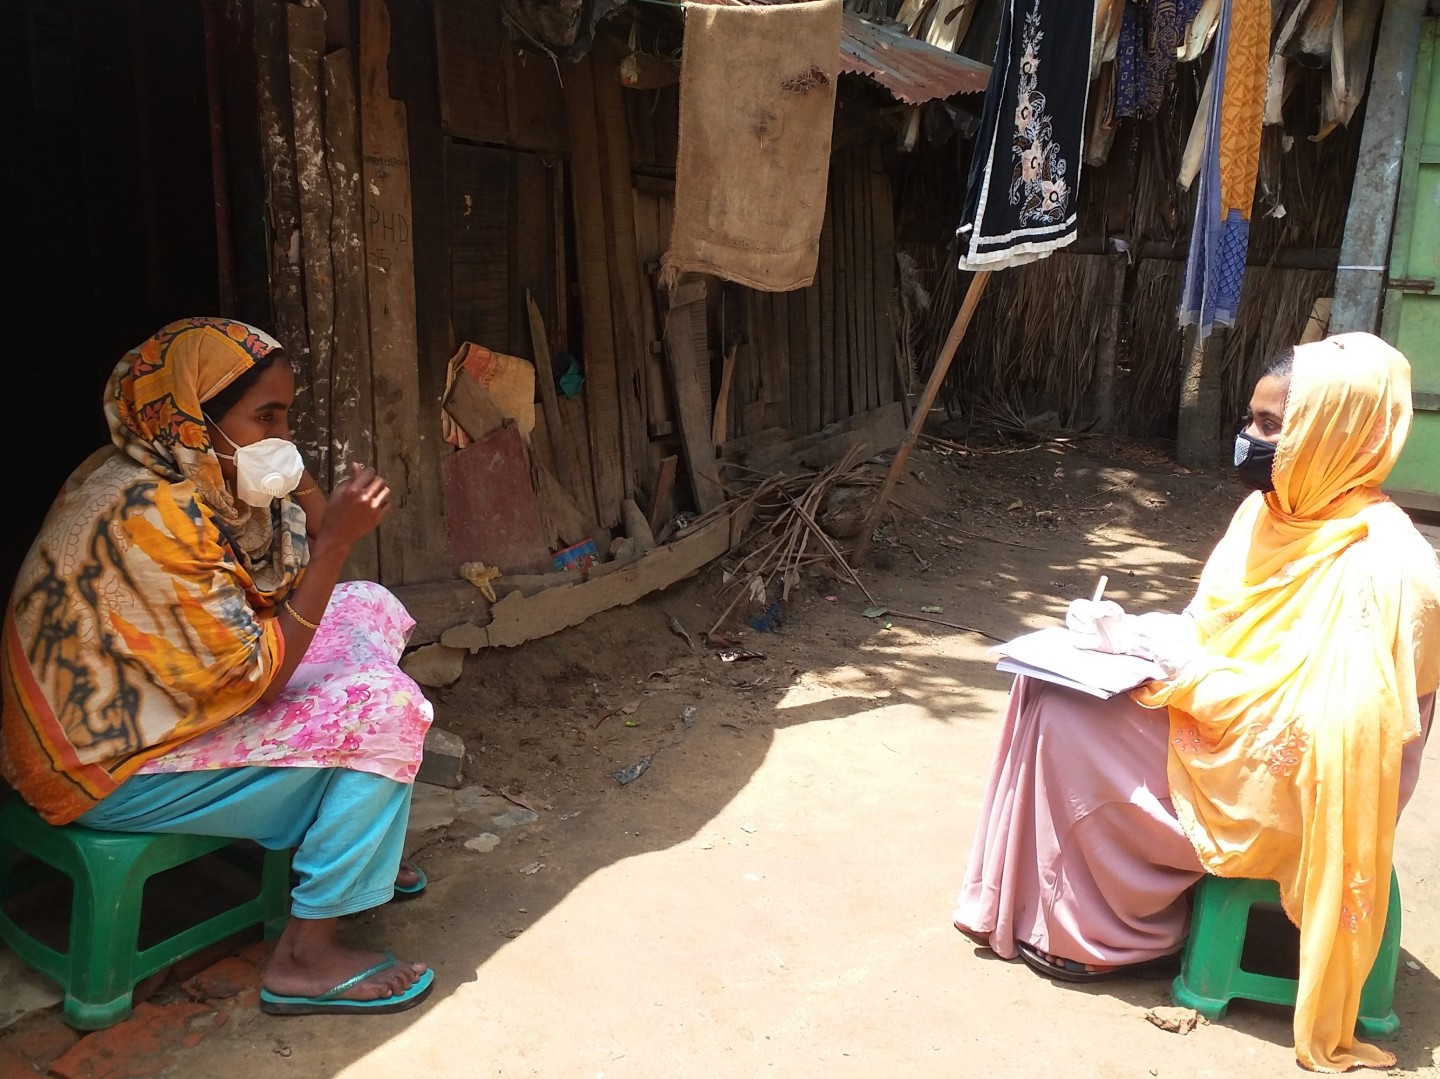 A community facilitator visits a household to share hygiene and sanitation information